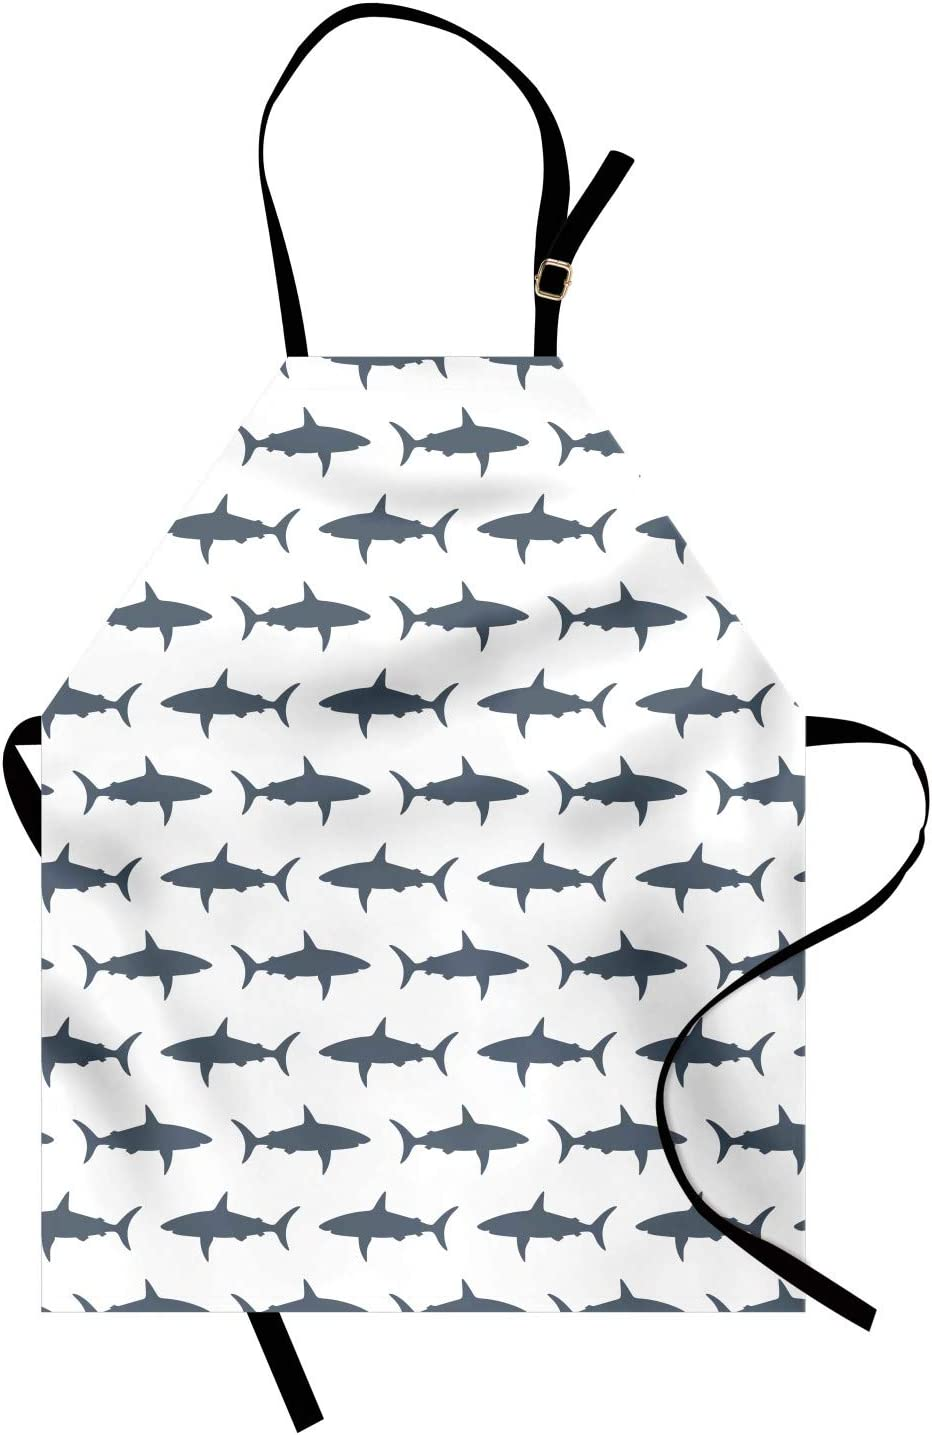 Ambesonne Sea Animals Apron, Sharks Swimming Horizontal Silhouettes Powerful Dangerous Wild Life, Unisex Kitchen Bib with Adjustable Neck for Cooking Gardening, Adult Size, Charcoal Grey